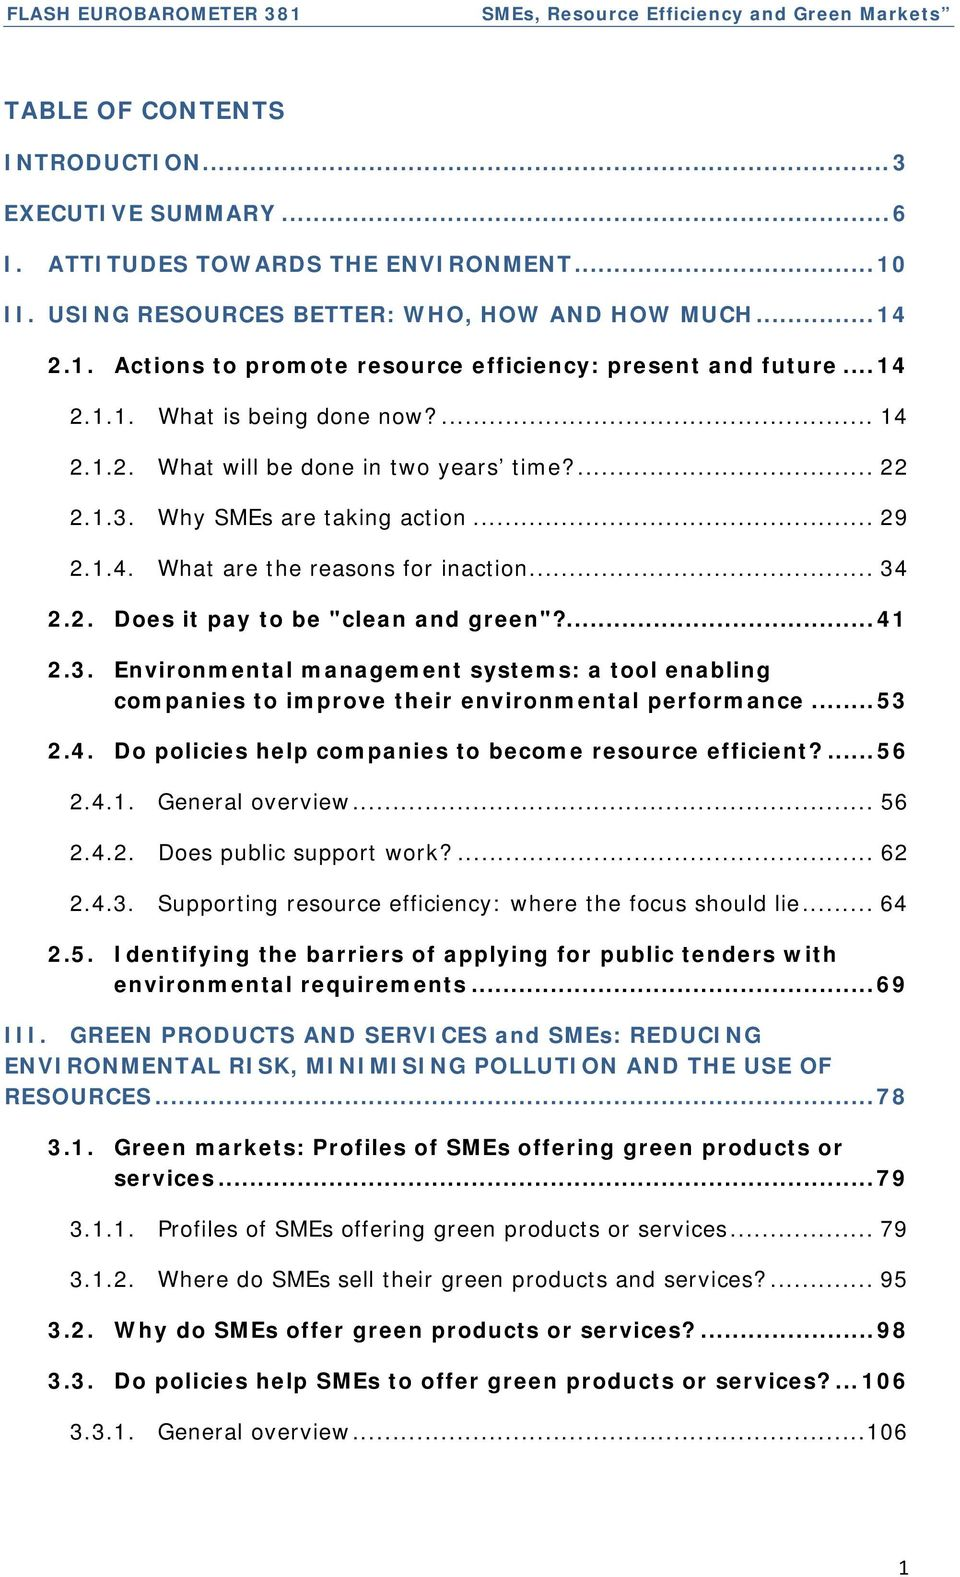 ... 41 2.3. Environmental management systems: a tool enabling companies to improve their environmental performance... 53 2.4. Do policies help companies to become resource efficient?... 56 2.4.1. General overview.